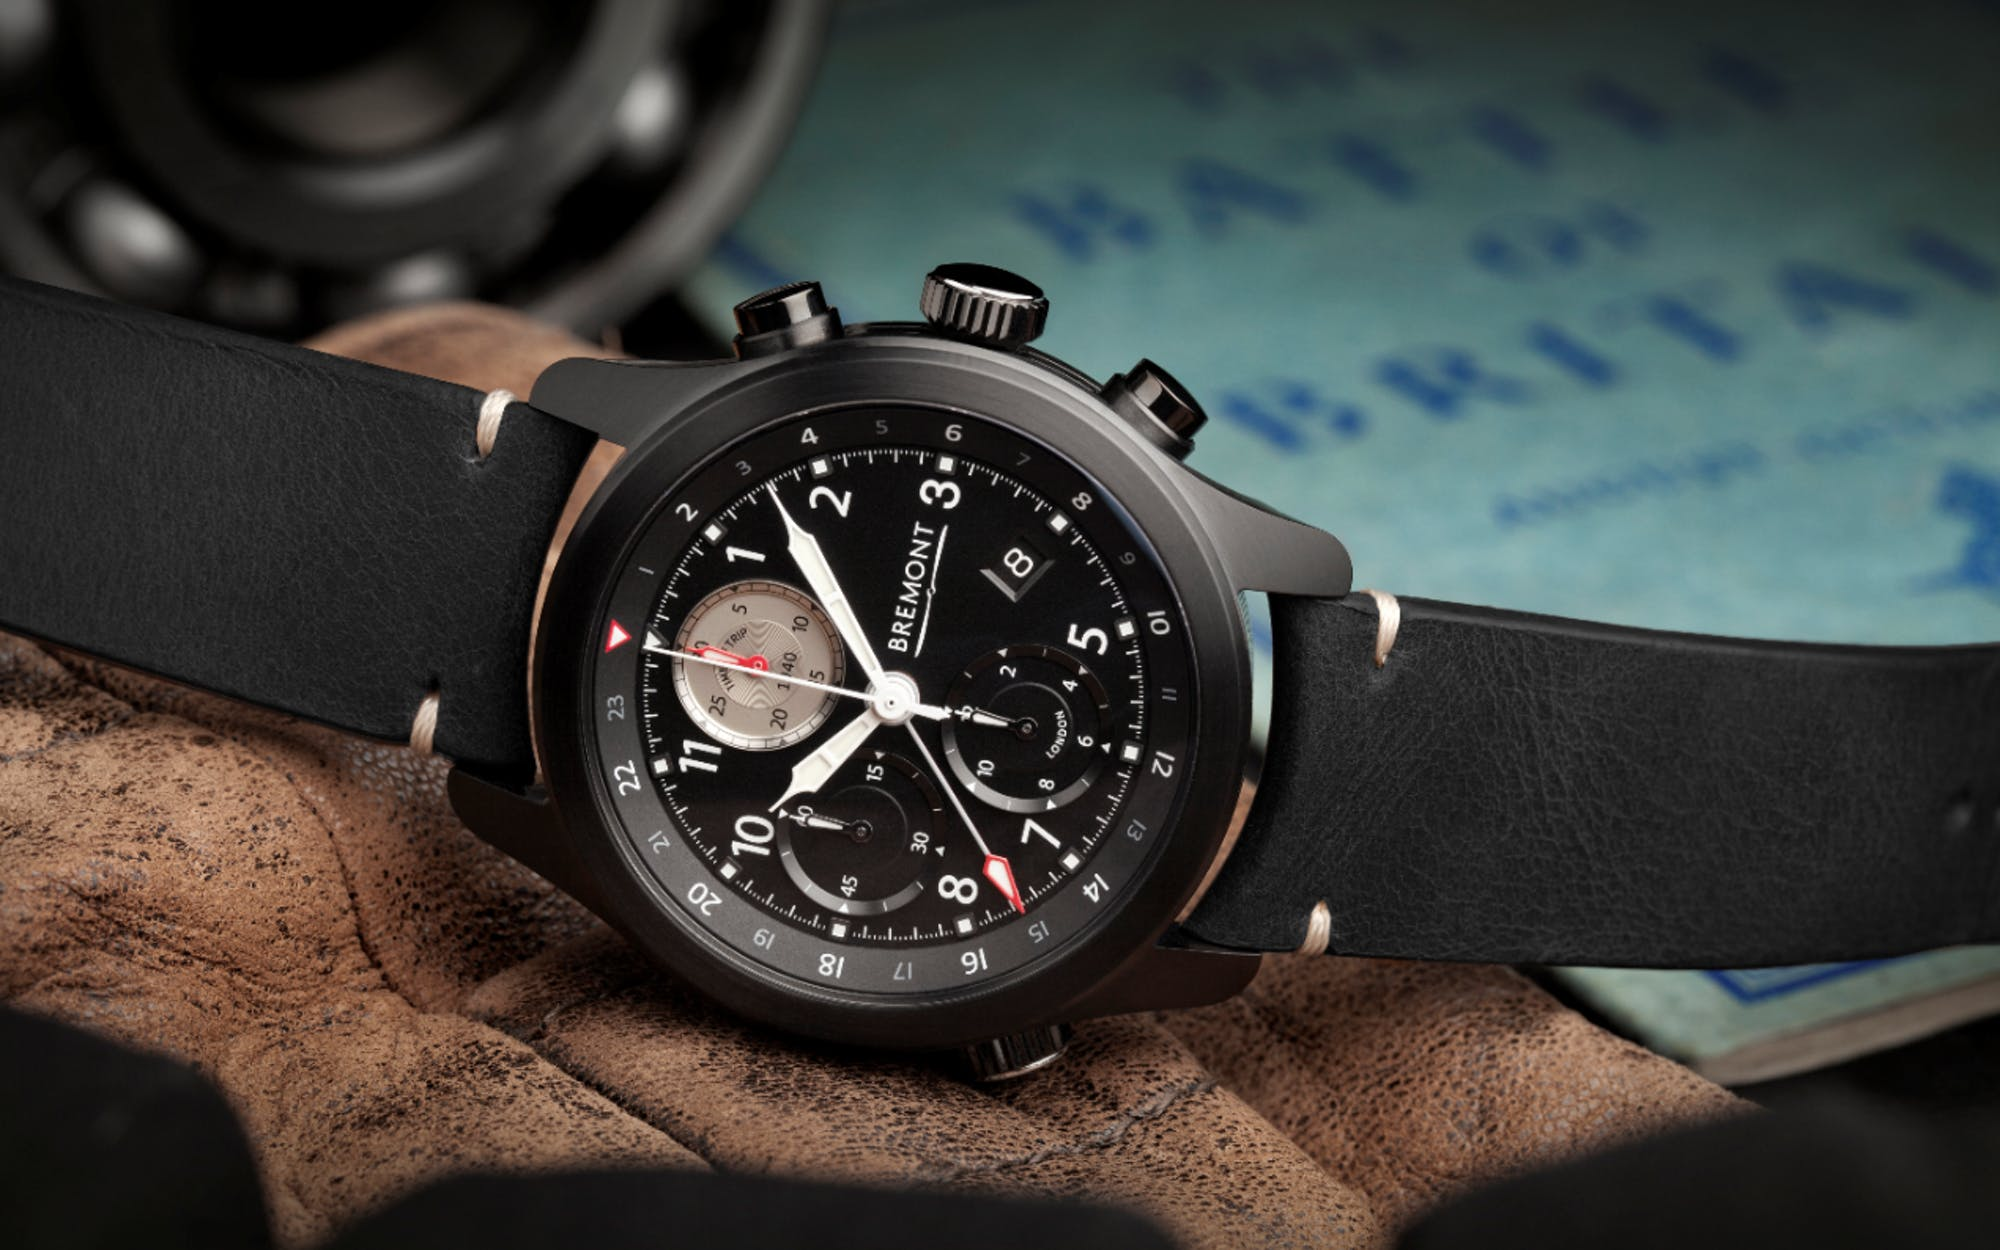 Grace Under Fire: Luxury leadership in troubled times  Time for action - An interview with British watchmaker Giles English, co-founder of Bremont